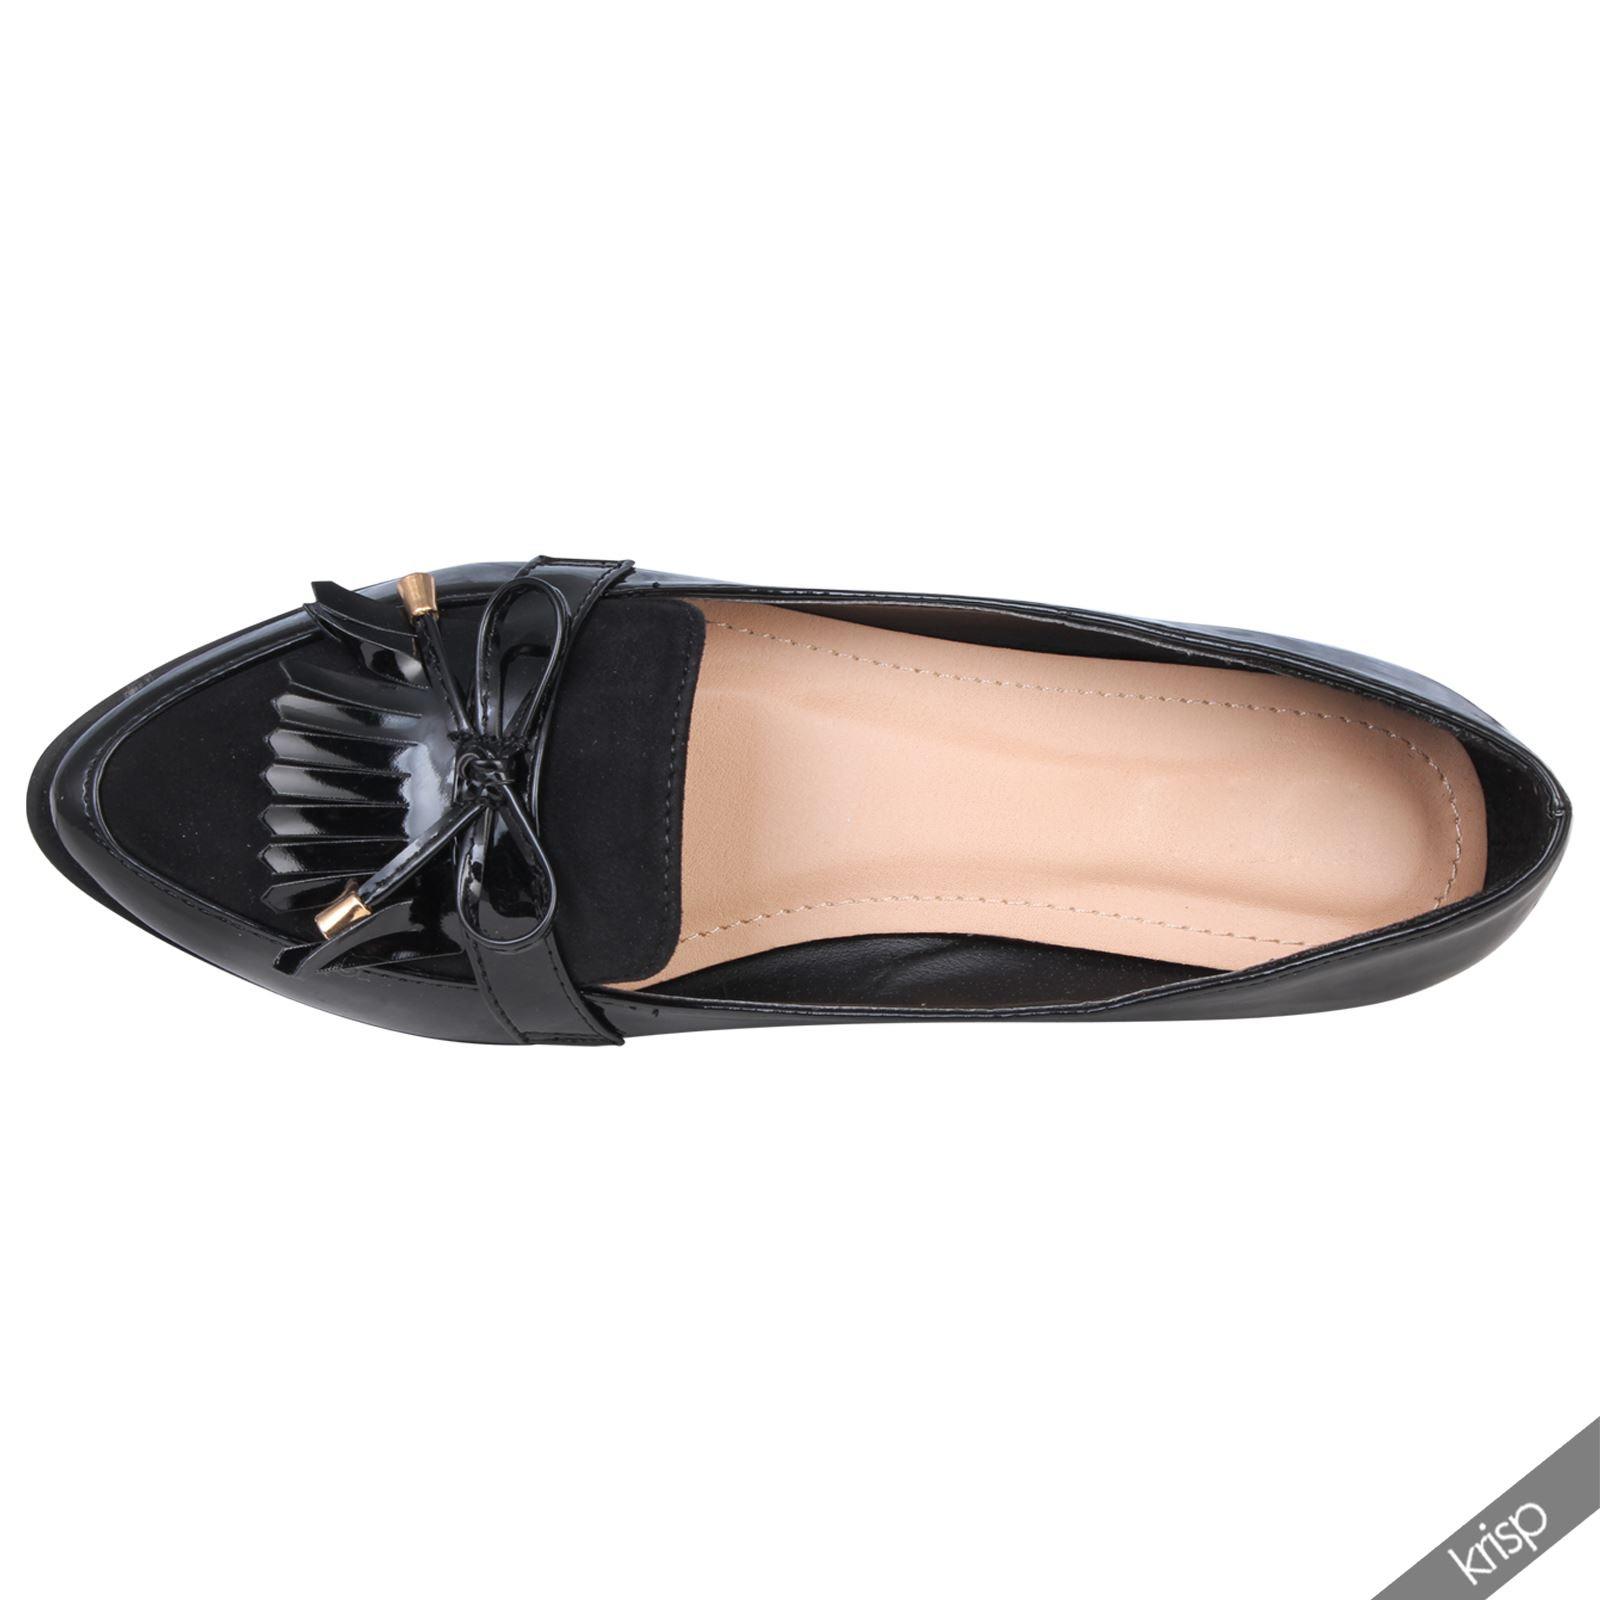 Womens Croc Reptile Patent Leather Penny Loafers Flats ...